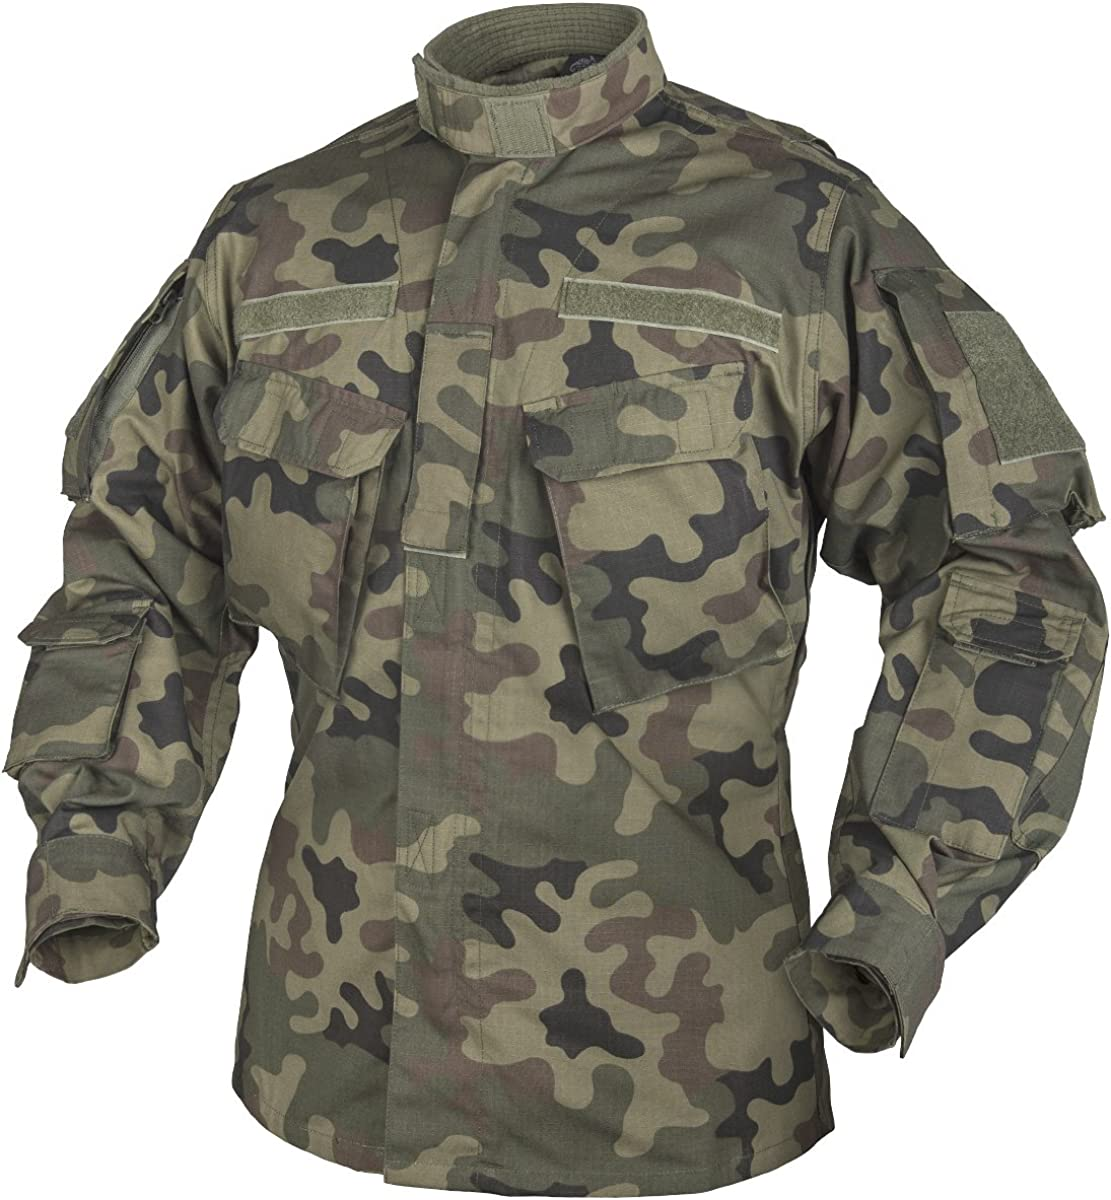 Helikon Women/'s T-Shirt Cotton Military Everyday Outdoor Top PL Woodland Camo